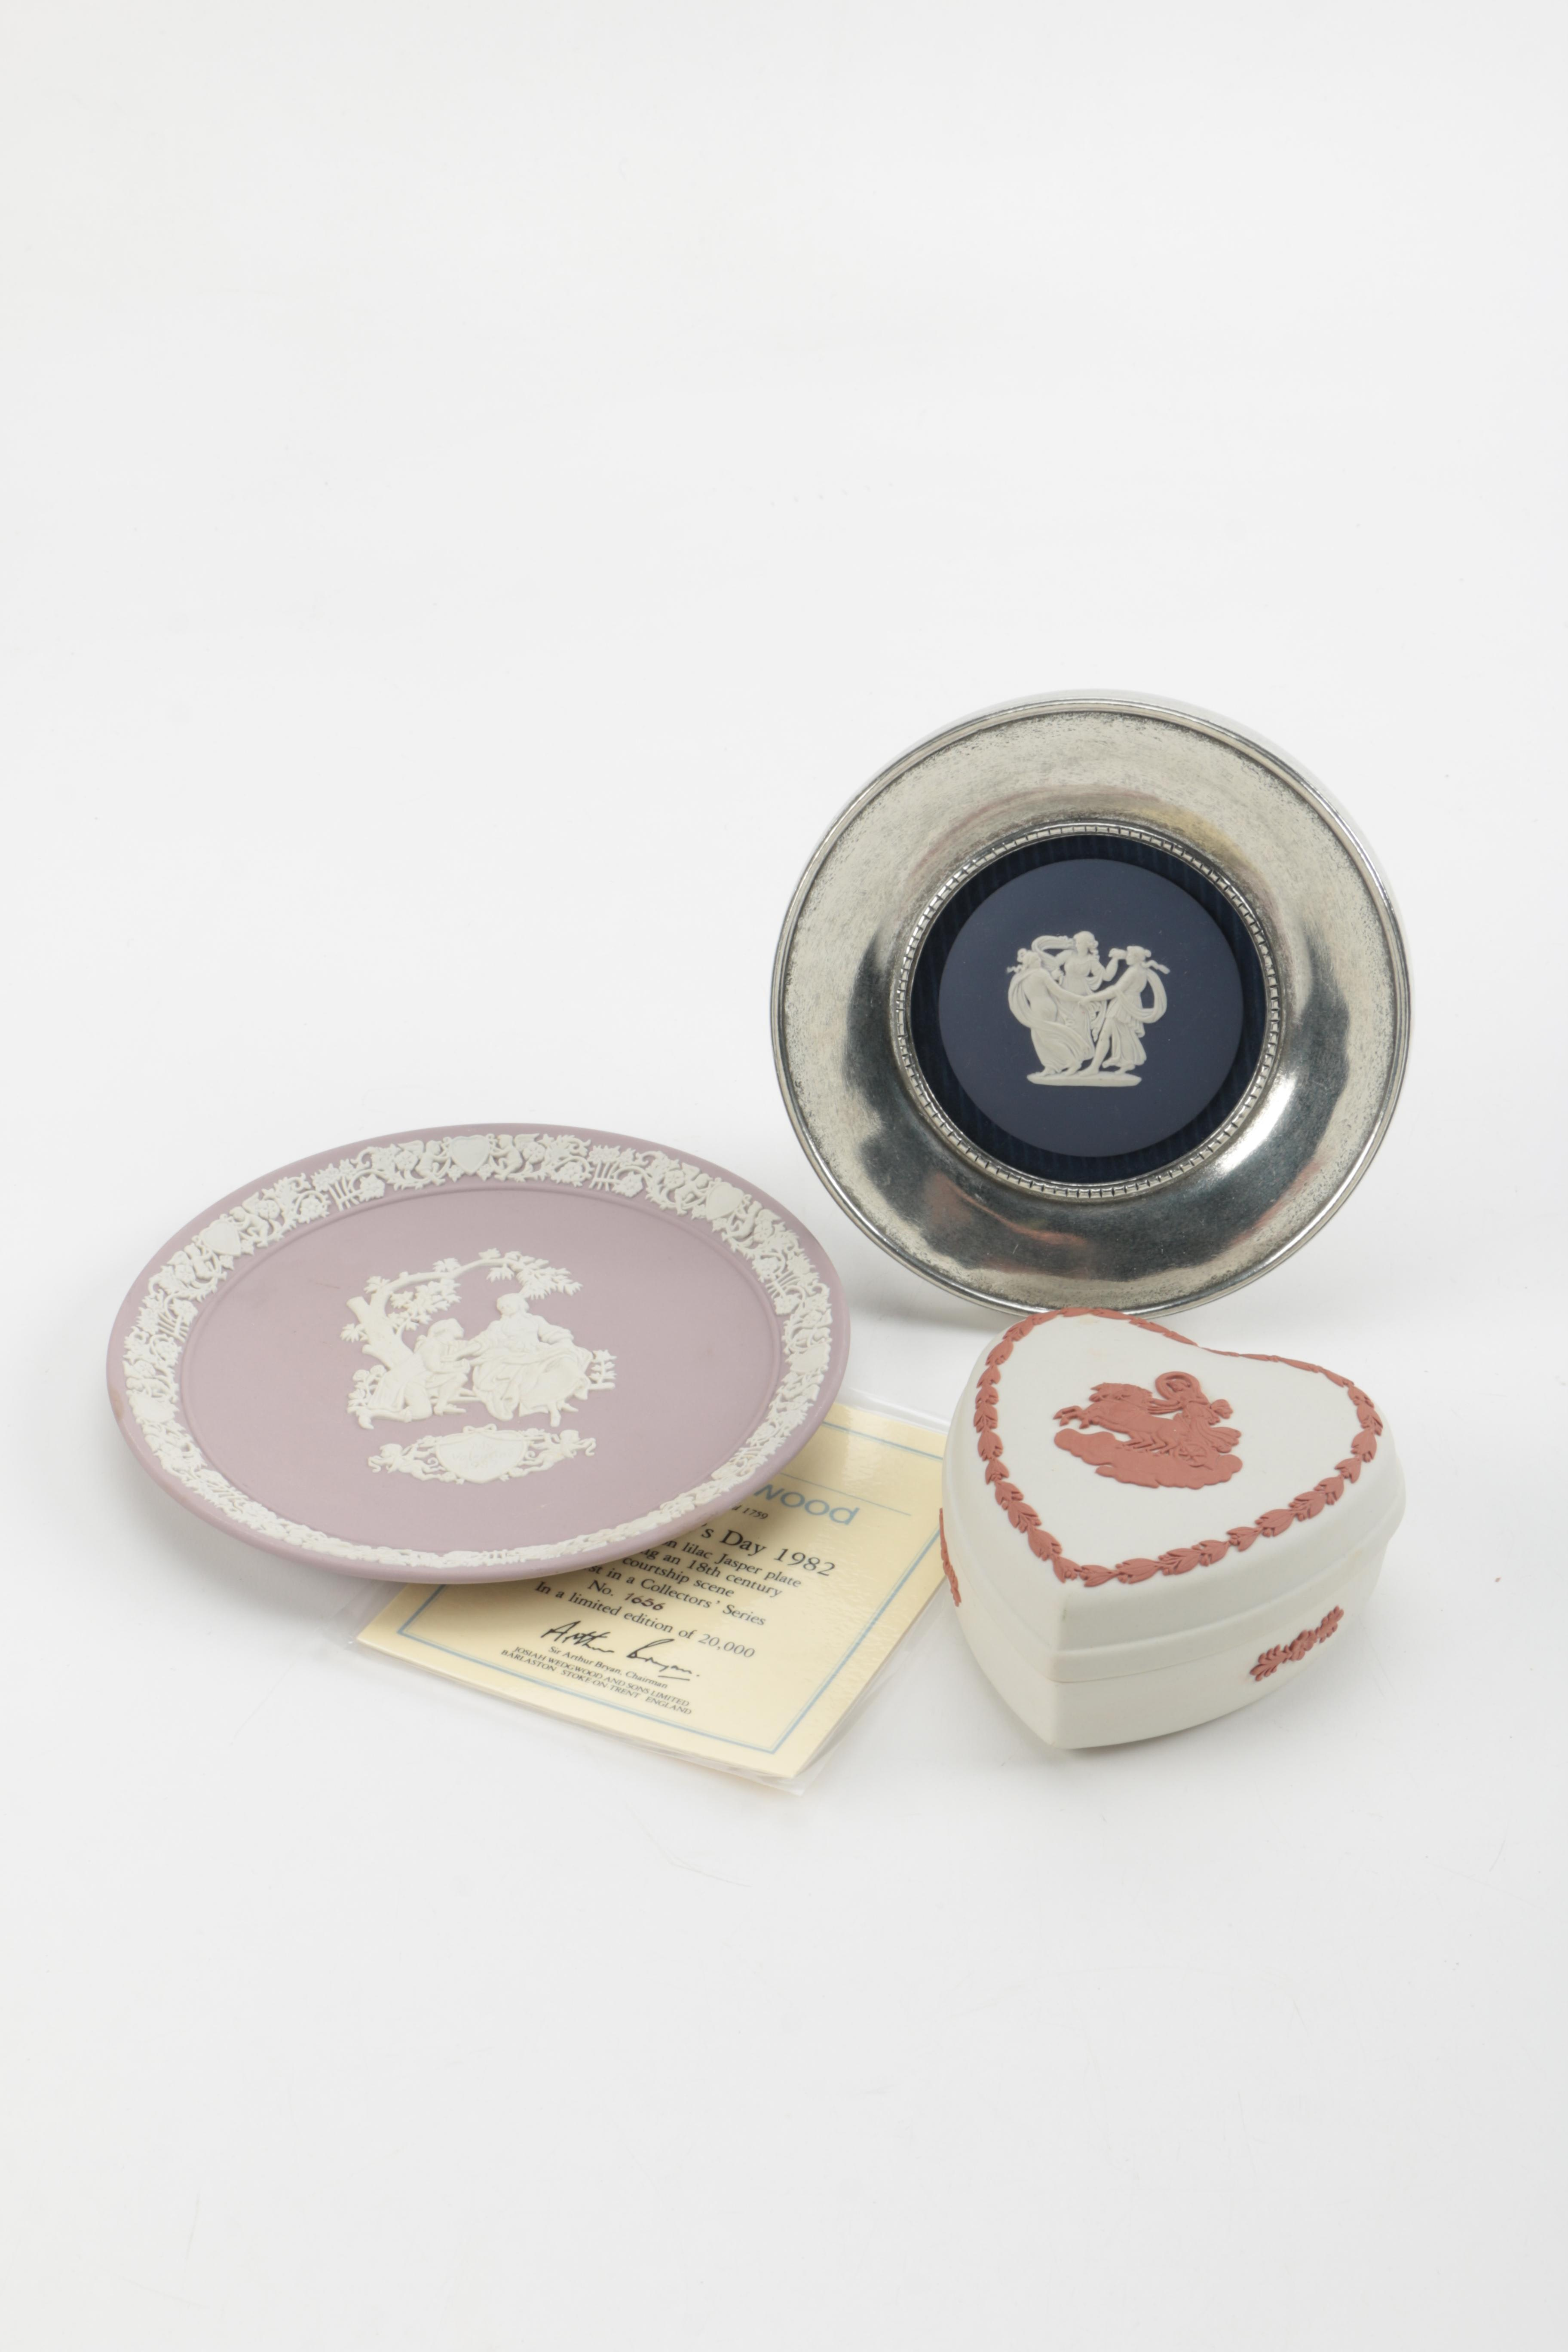 Collection of Wedgwood Plates and Heart Shaped Trinket Dish